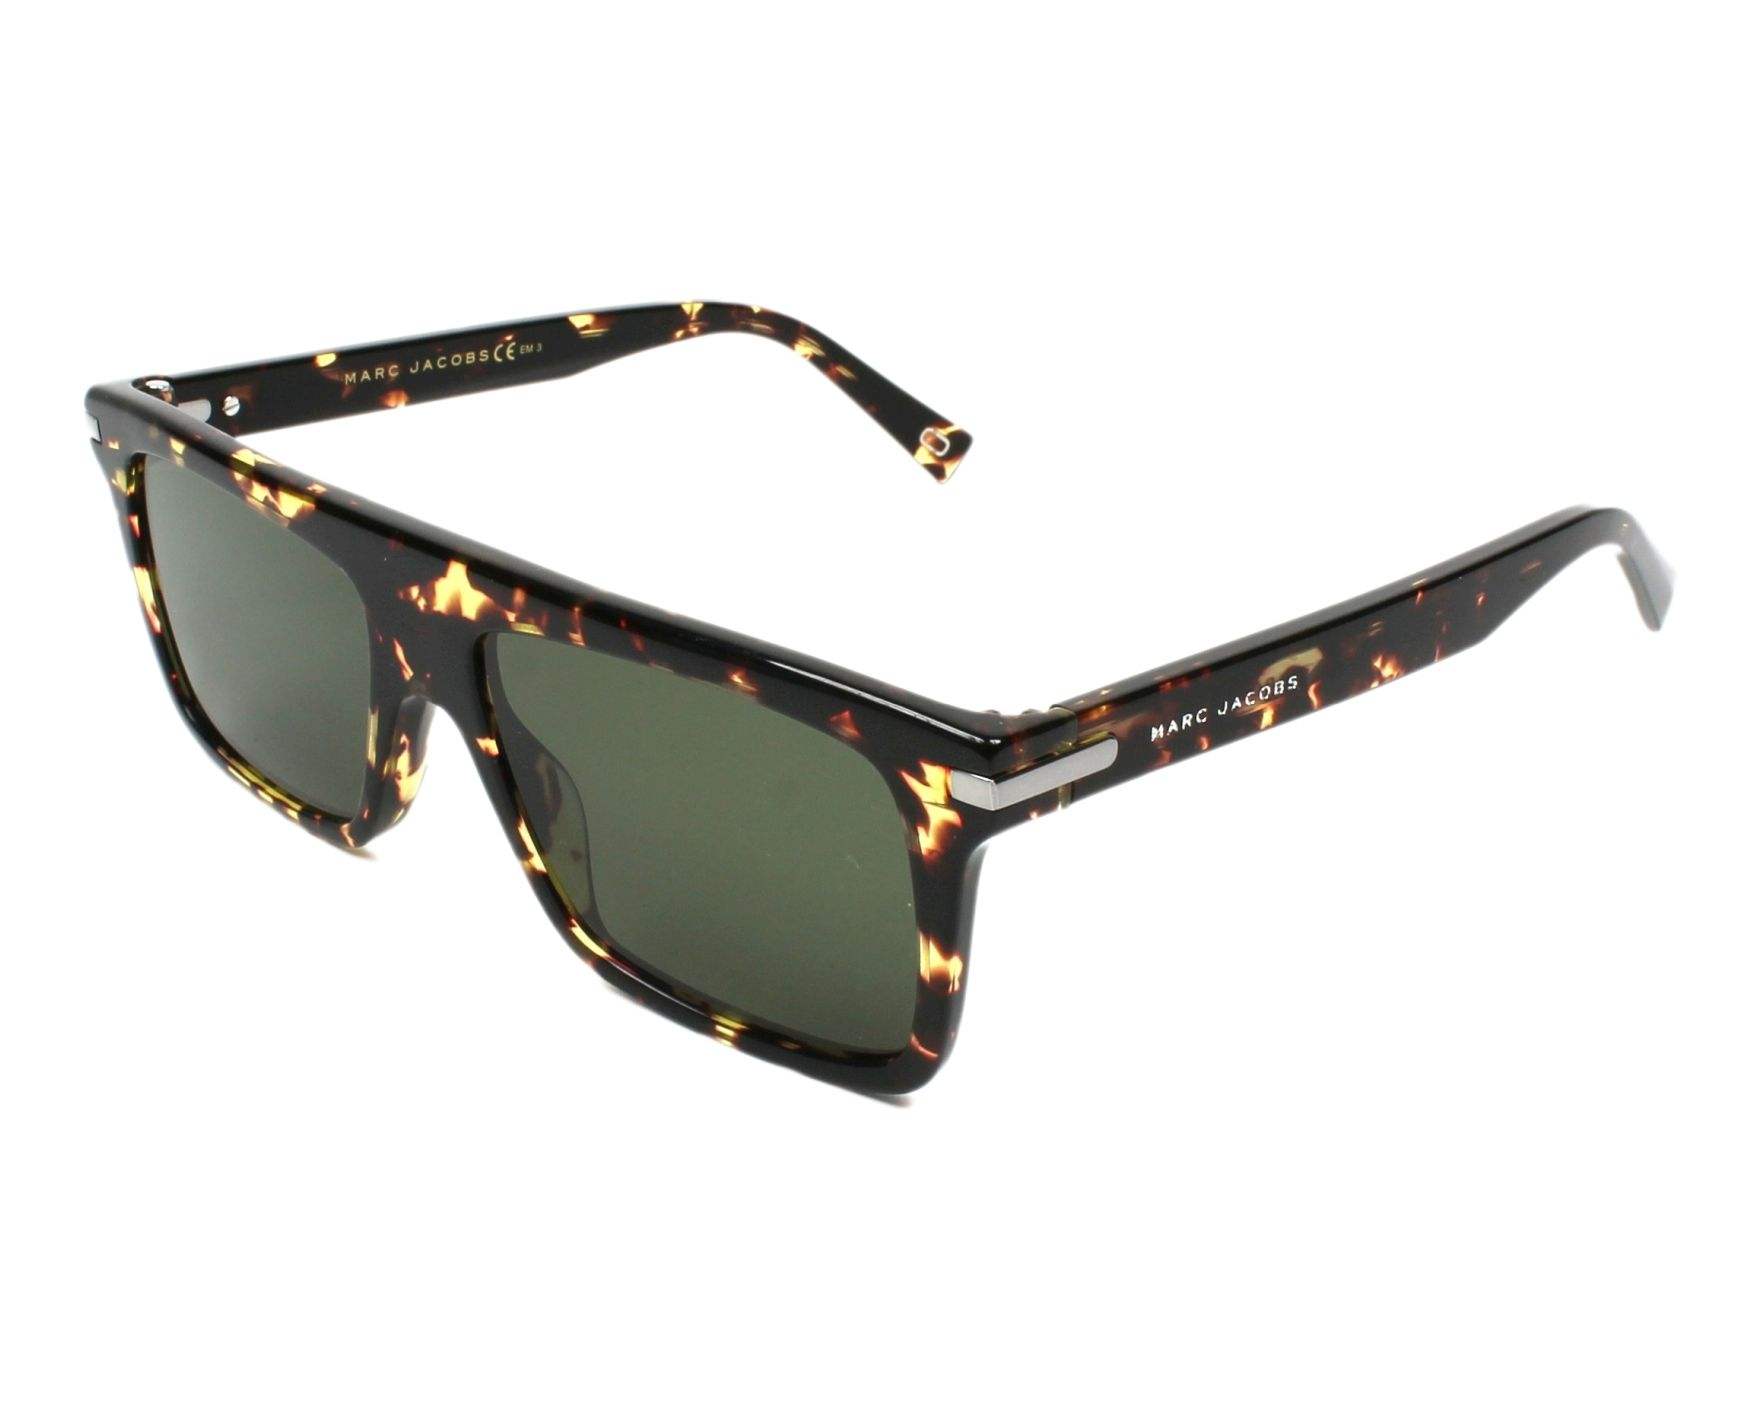 e5b78b2143 thumbnail Sunglasses Marc Jacobs MARC-186-S LWP QT - Havana profile view